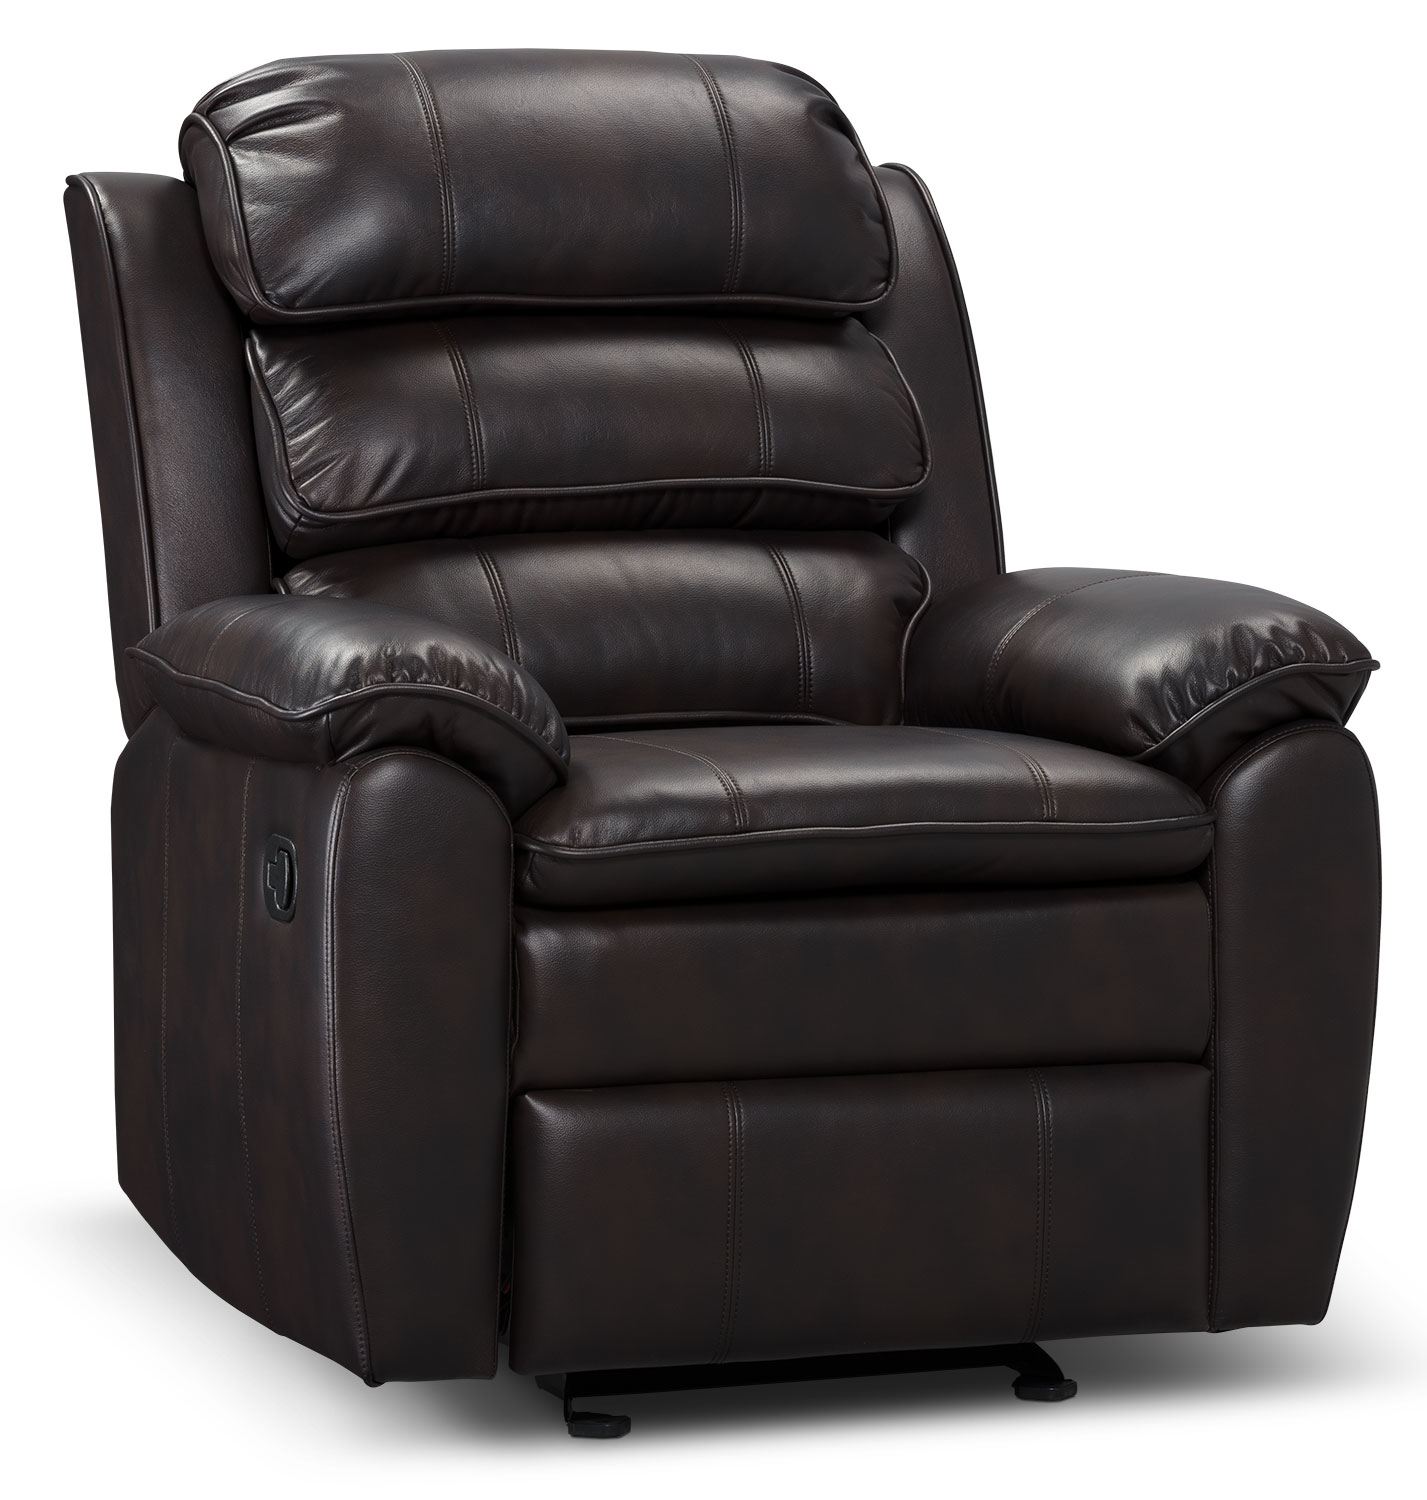 Adam Leather-Look Fabric Reclining Glider Chair – Brown